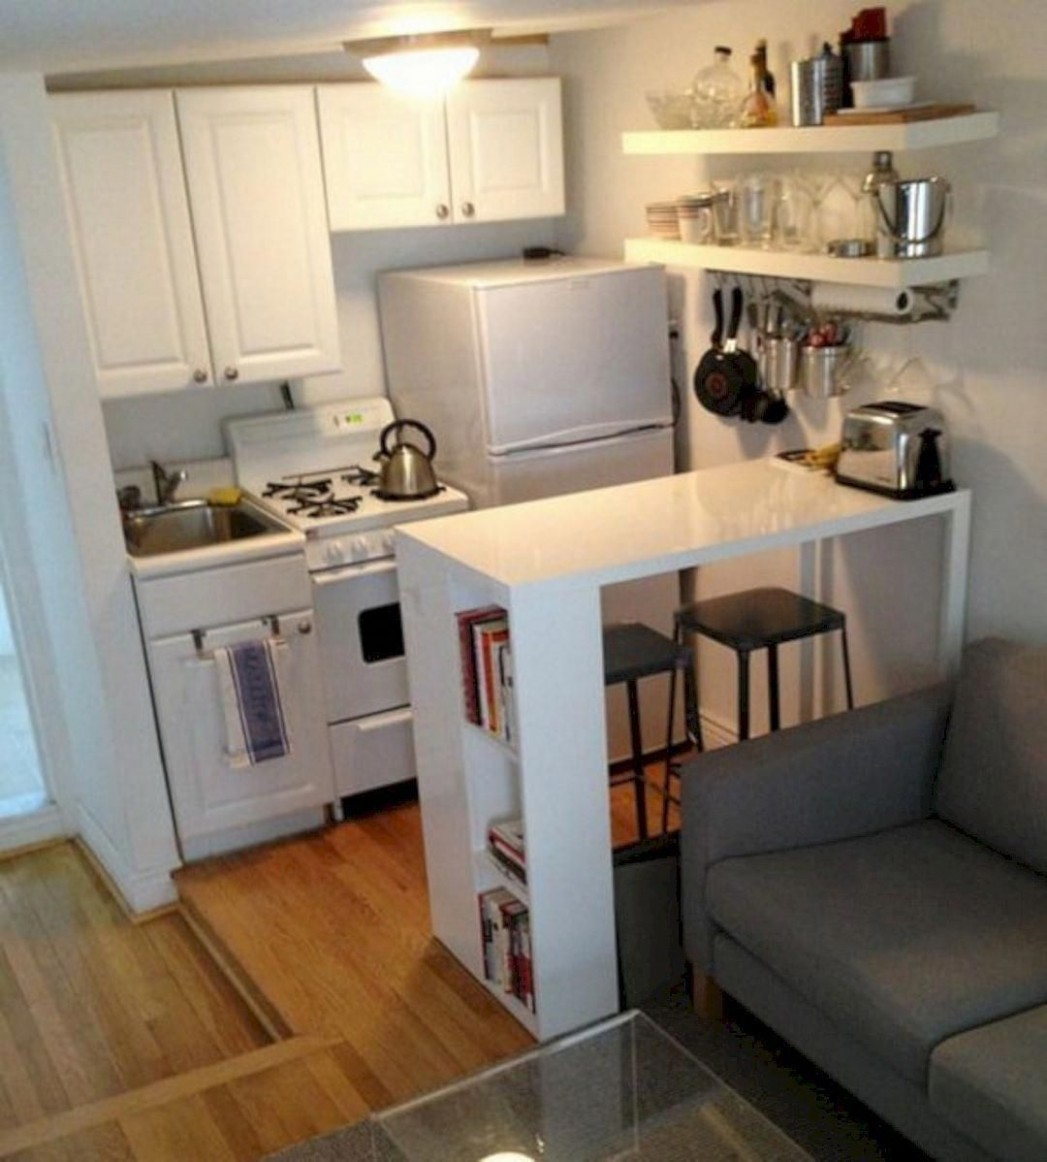 Amazing Small Kitchen Ideas For Small Space 11 #smallkitchen  - Kitchen Ideas For Apartments